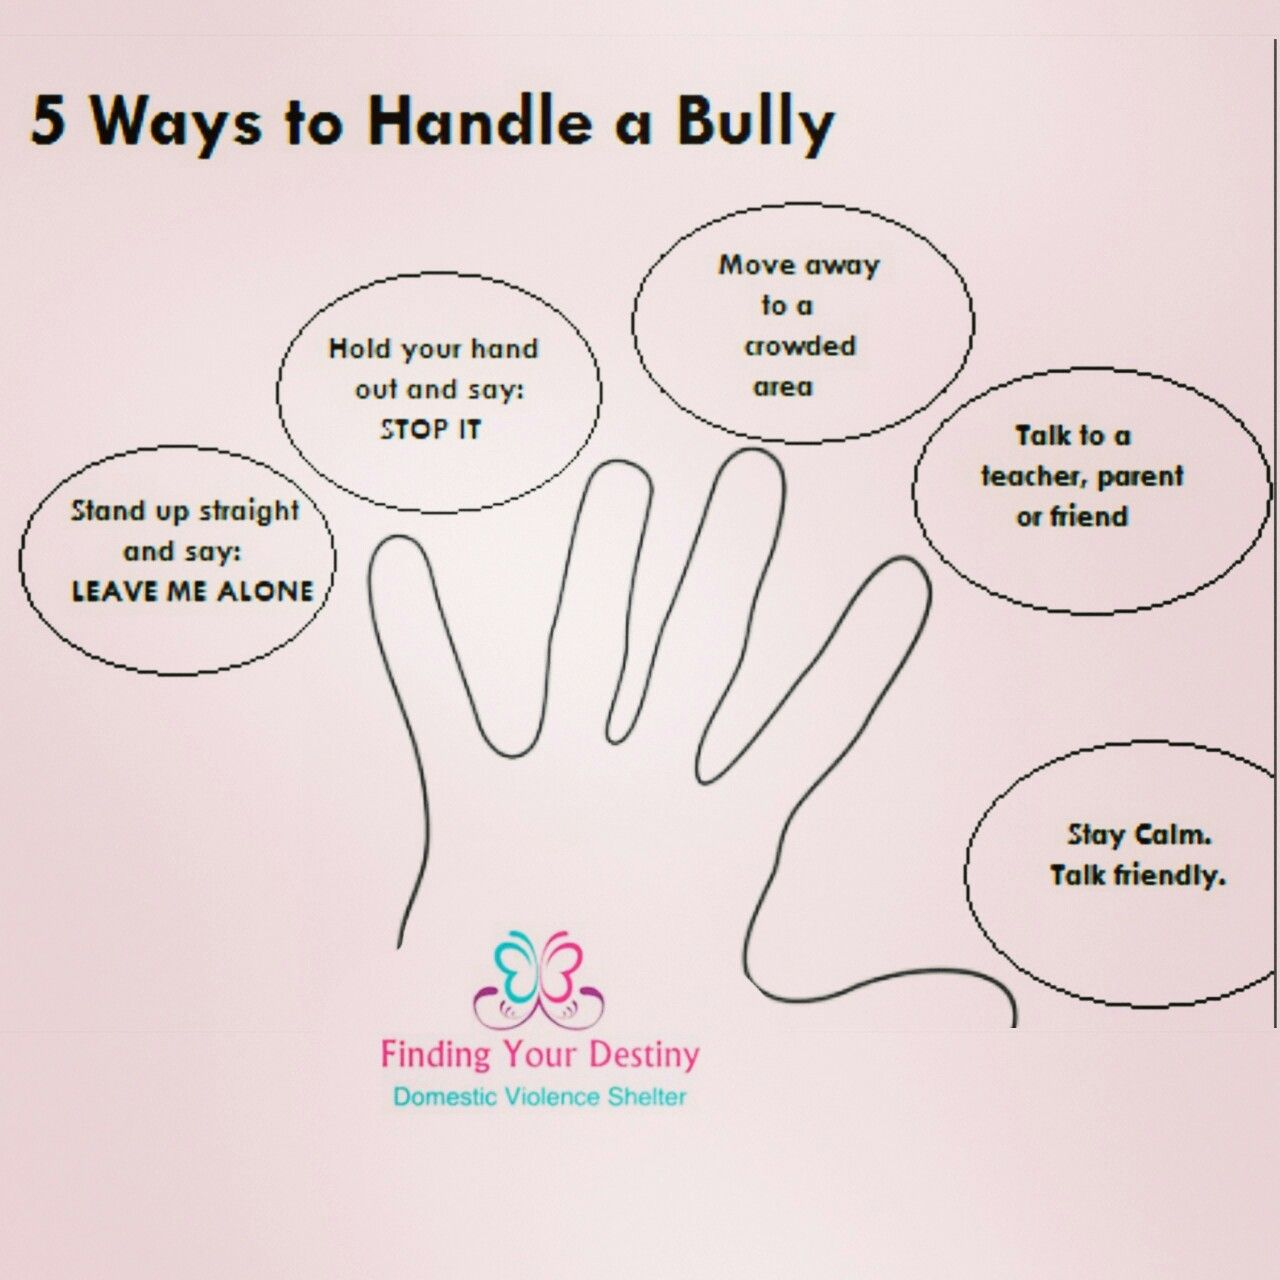 Pin by Rose on Bullying Bullying lessons, Bullying